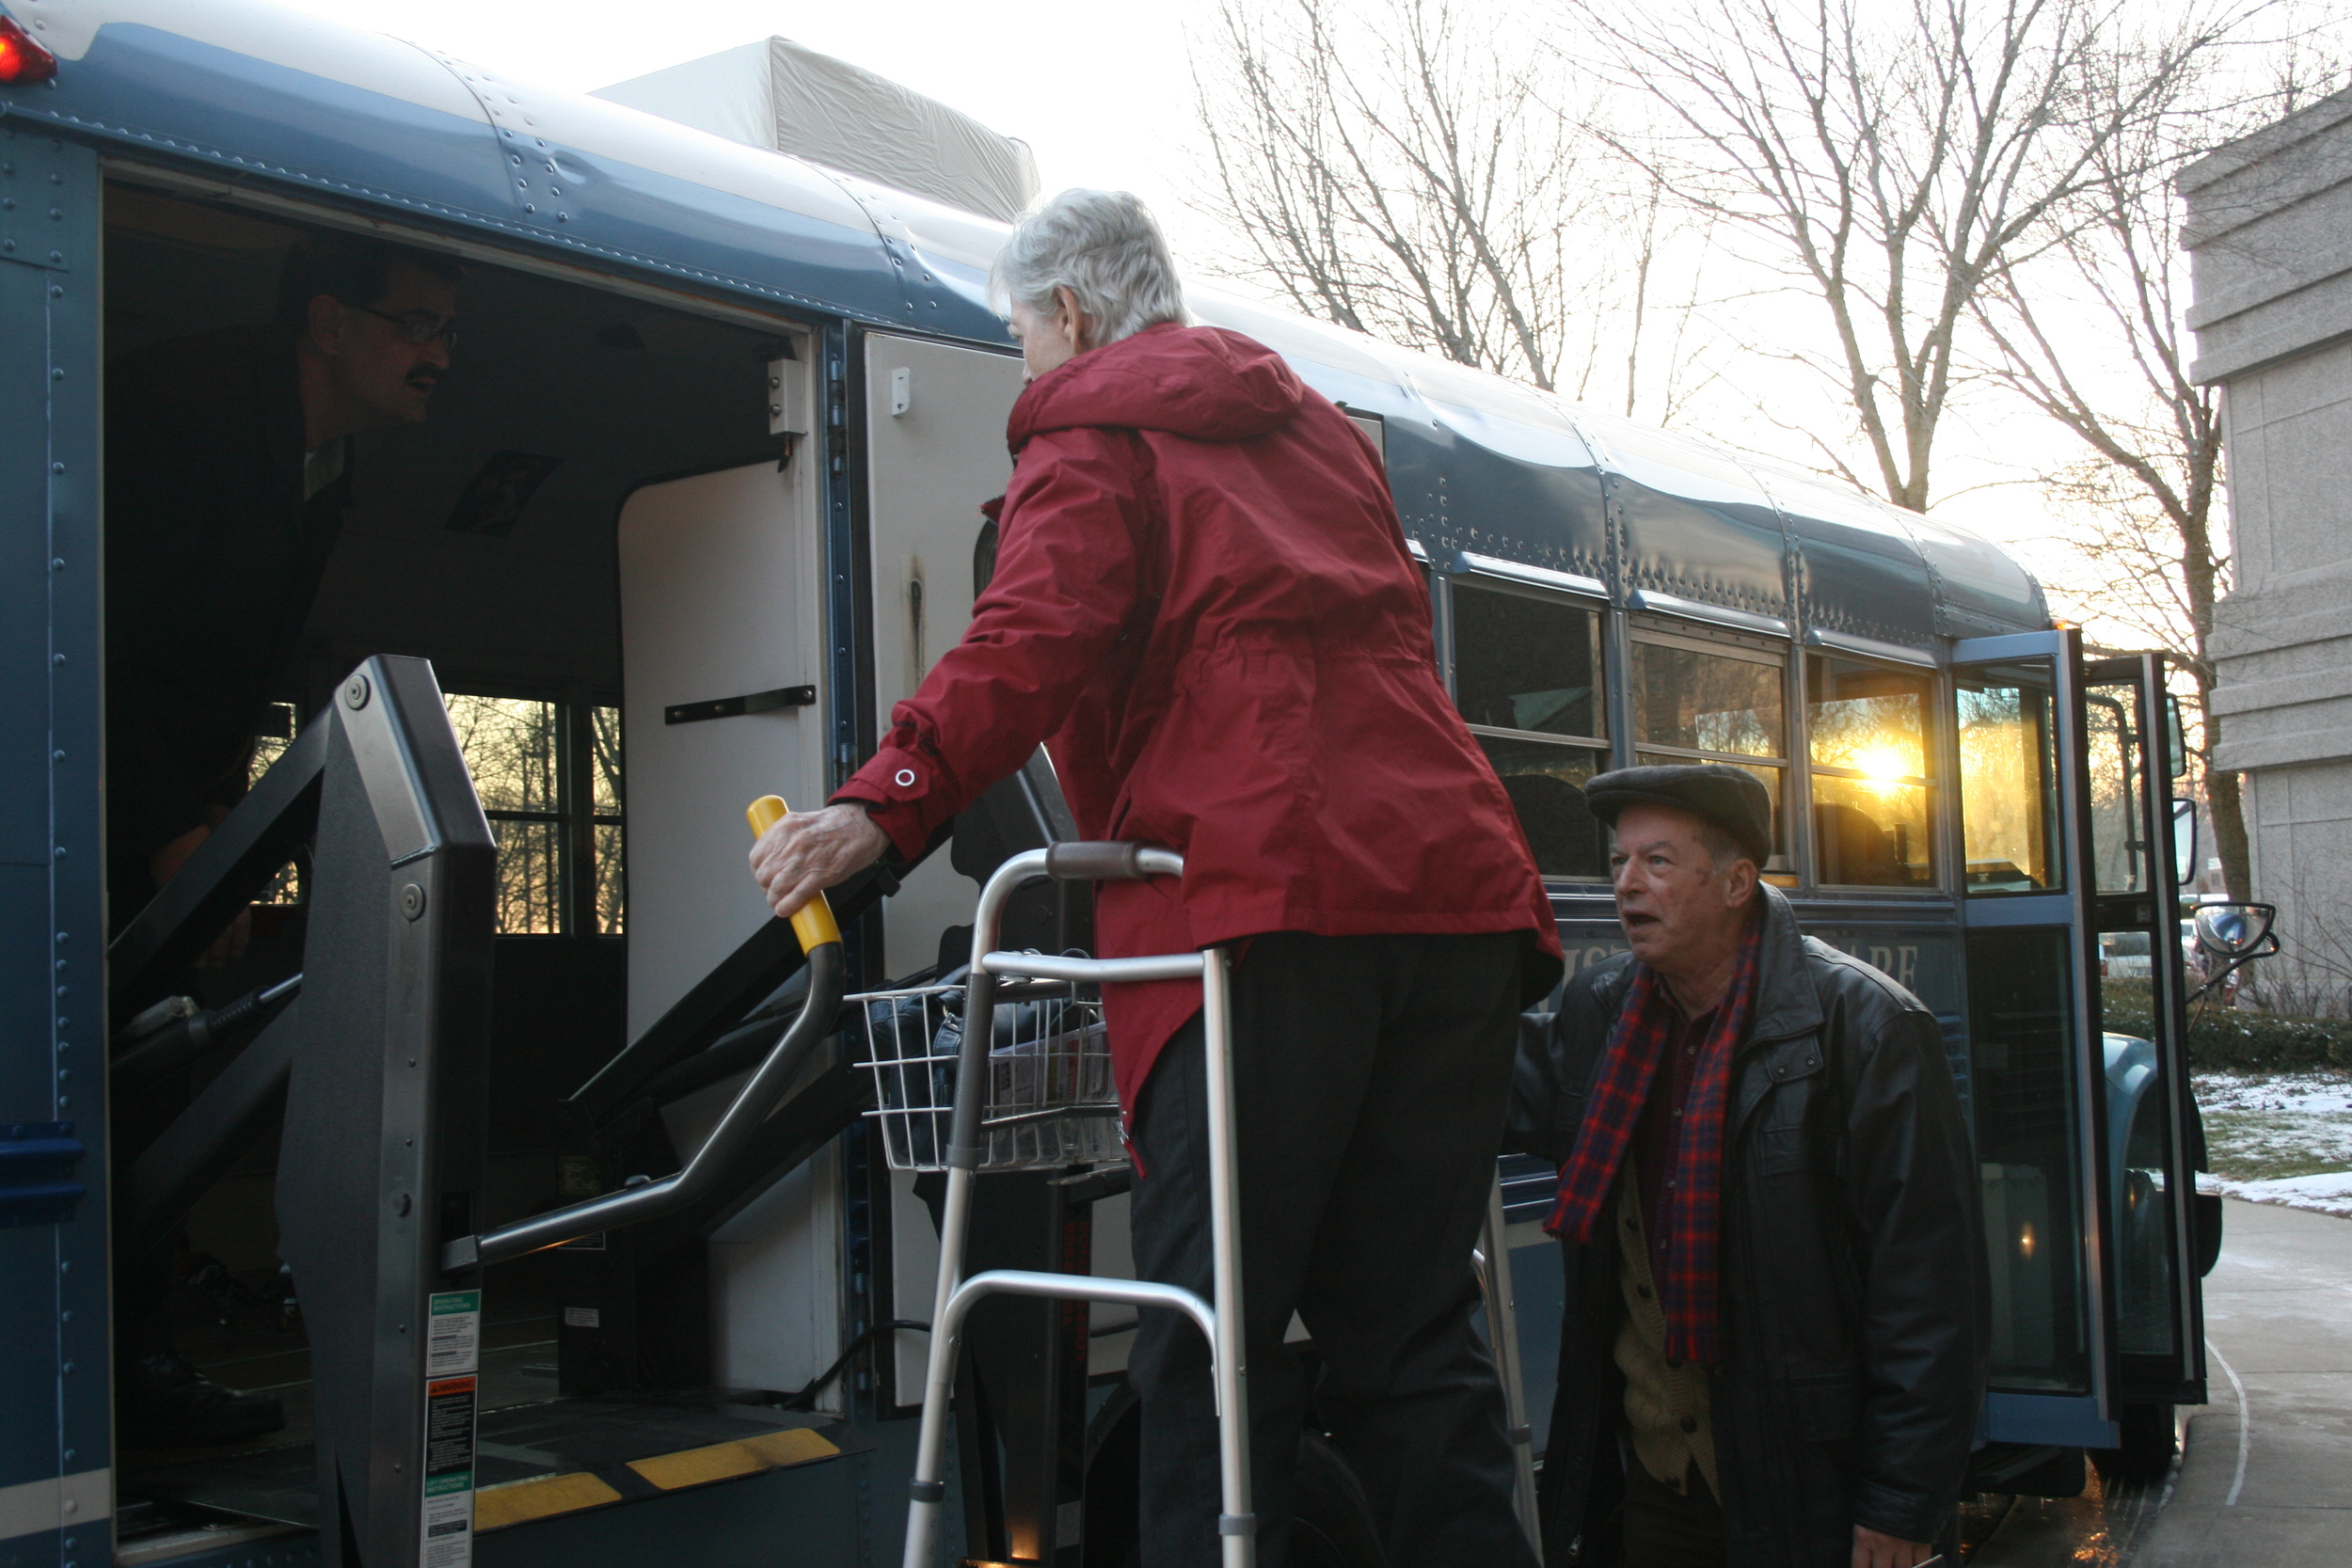 Ministry of Care Bus